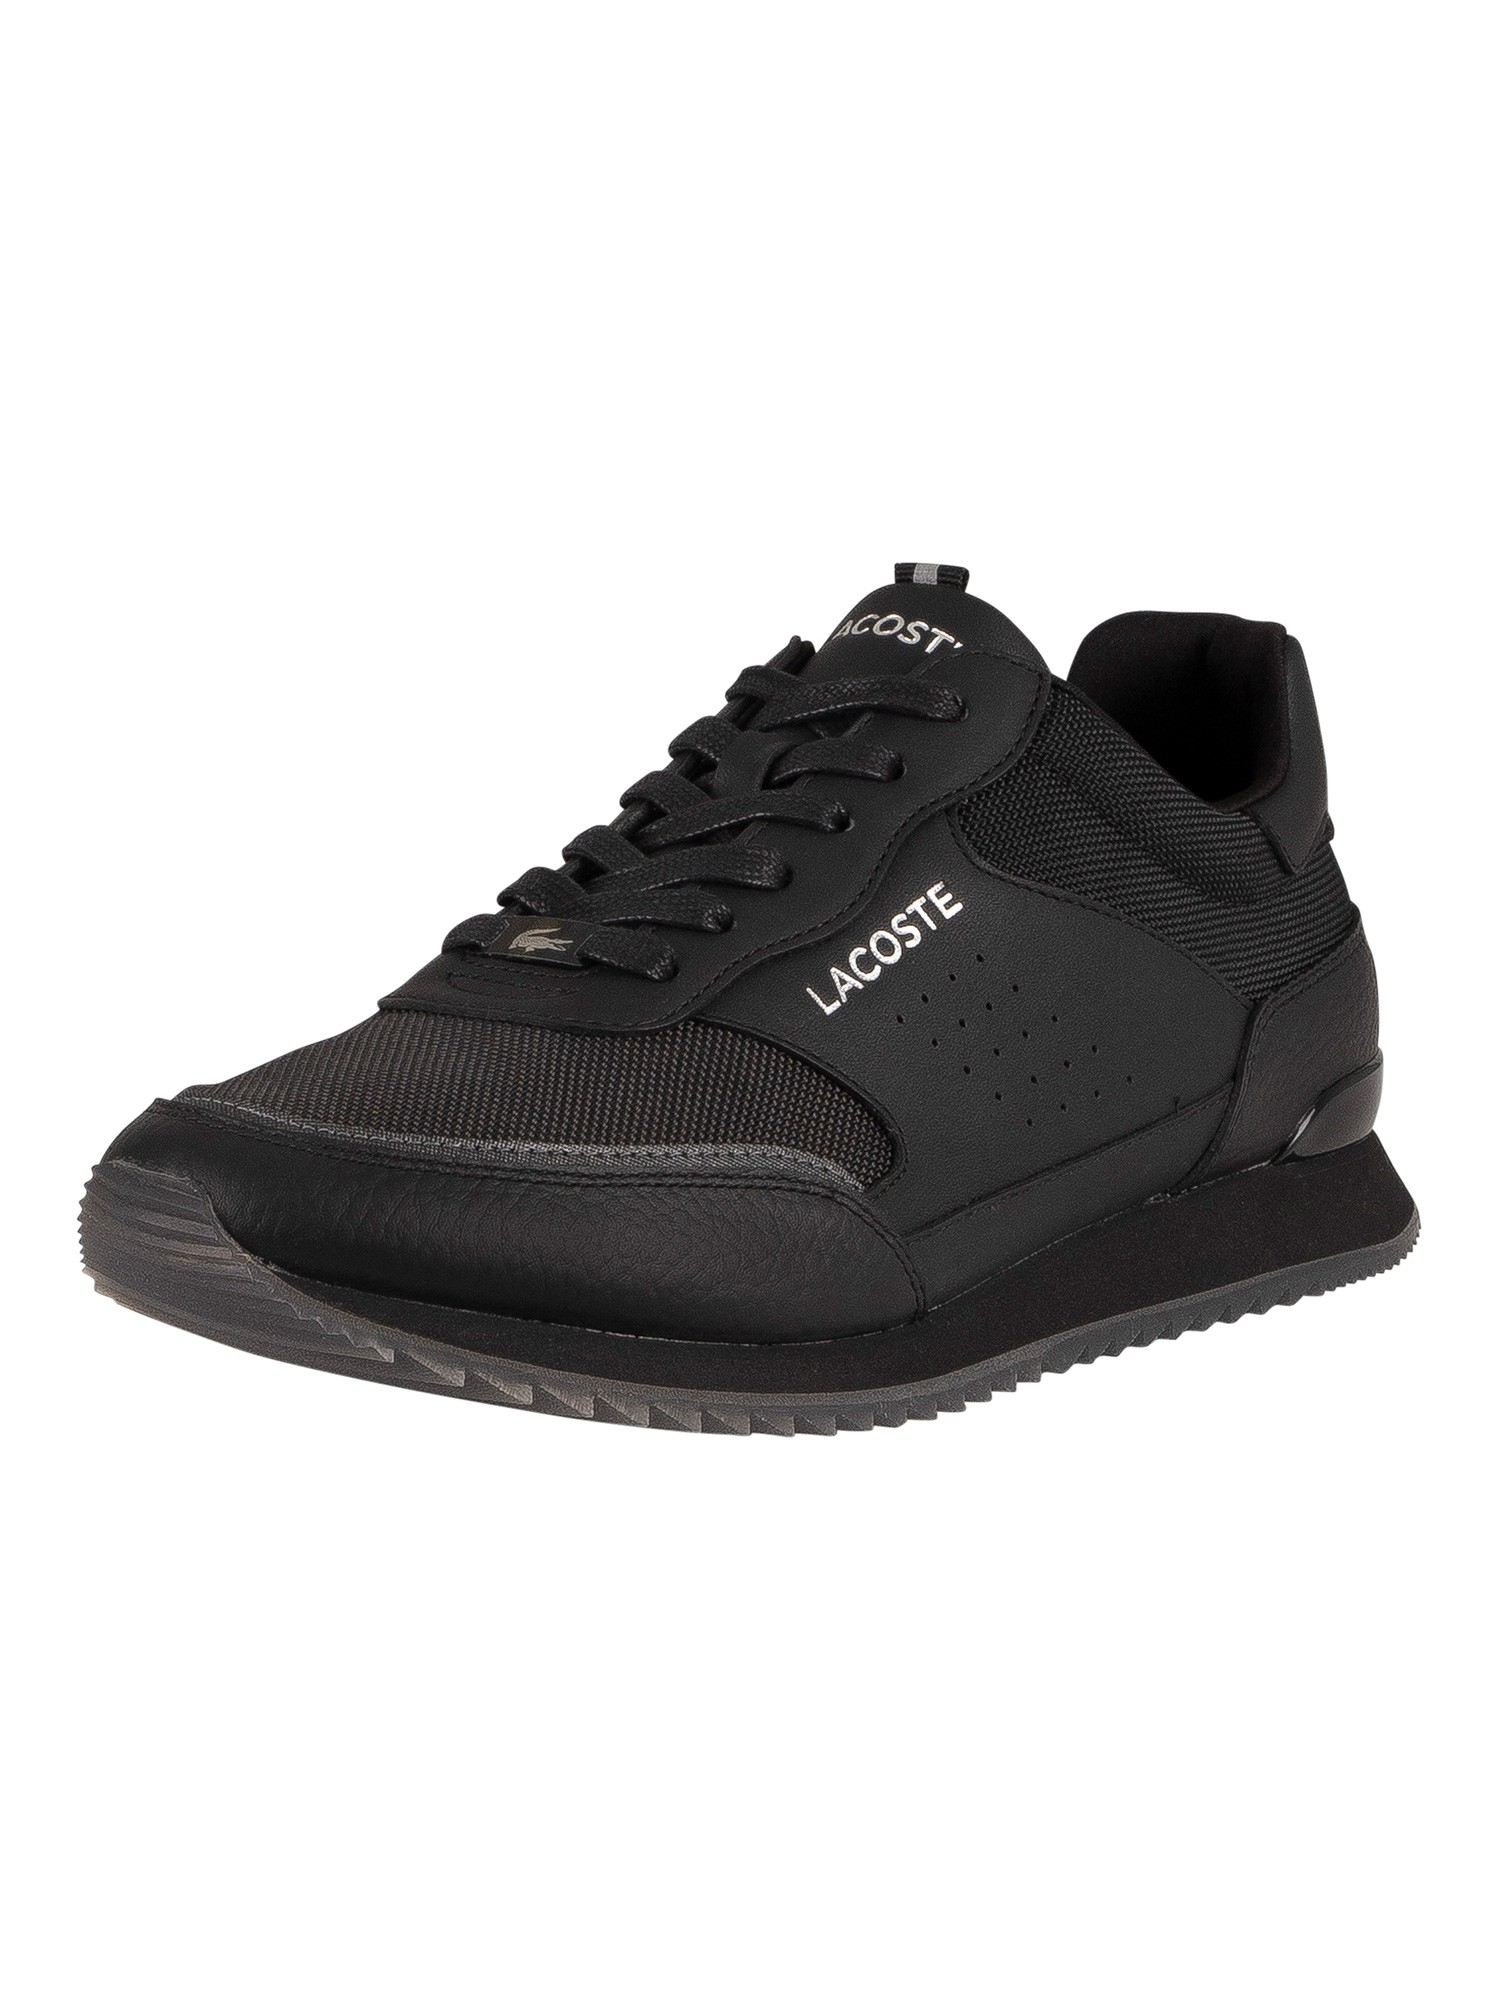 Partner Luxe 0321 1 SMA Trainers